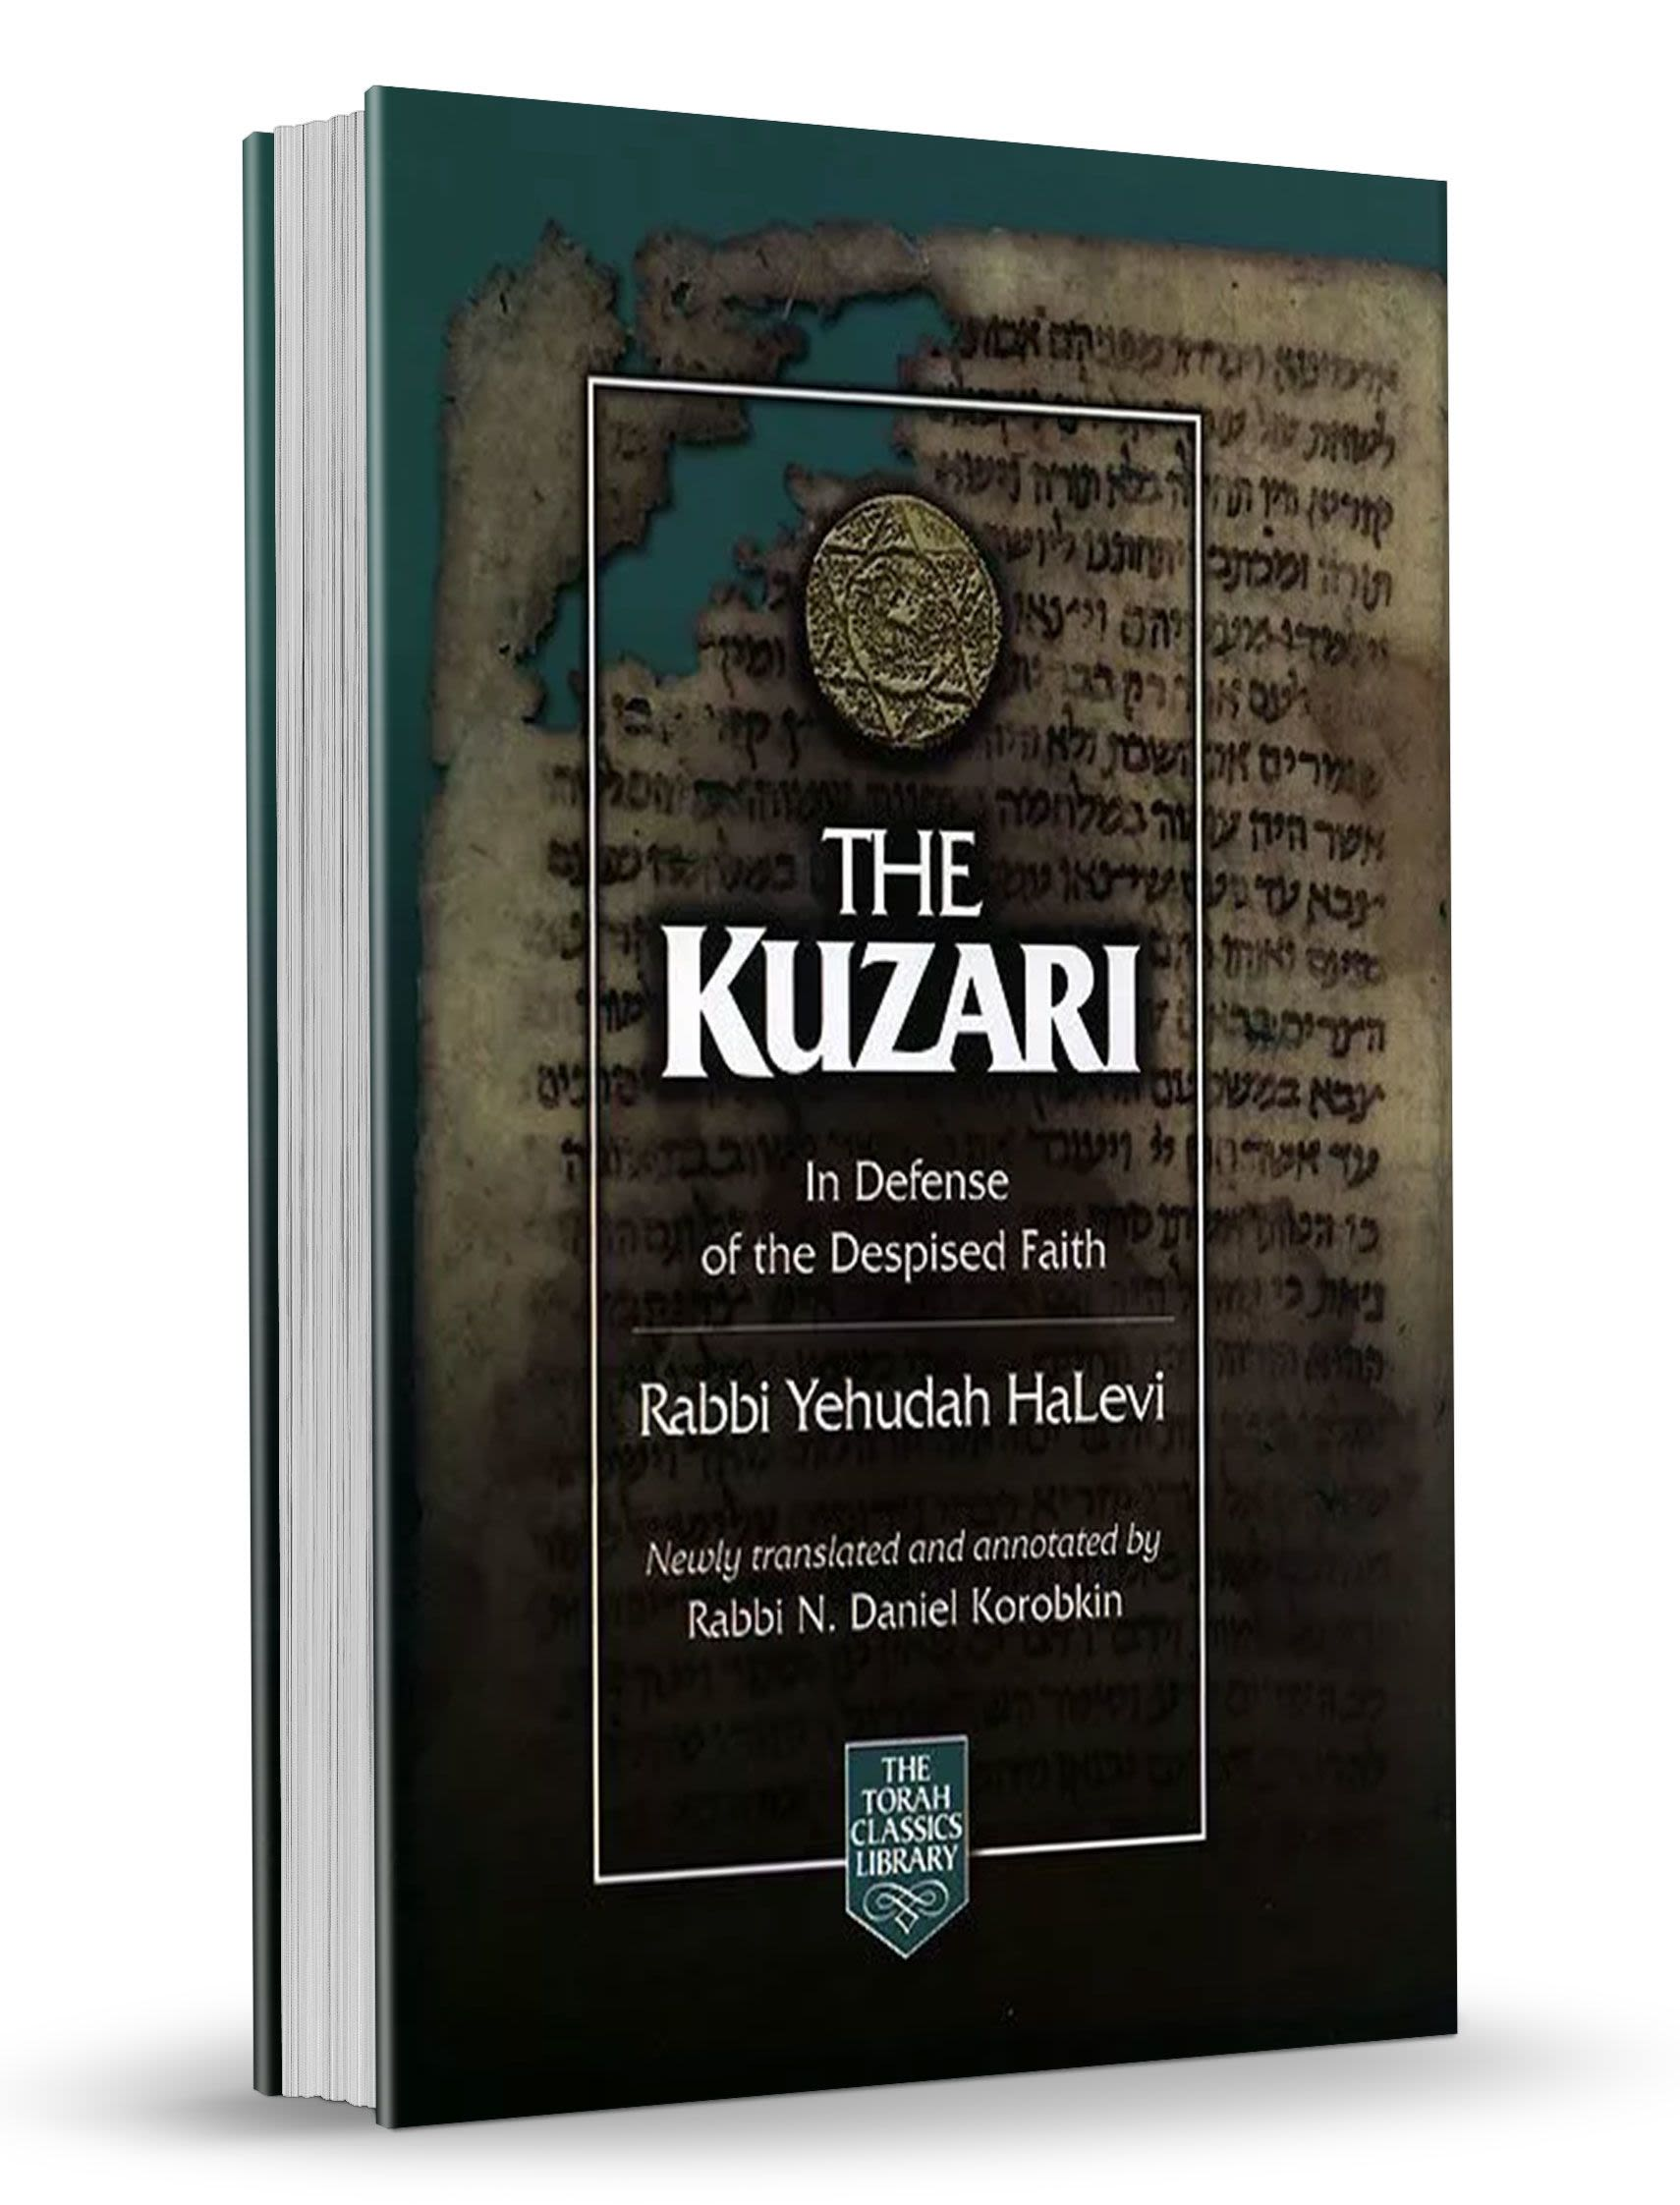 The Kuzari; Pocket edition